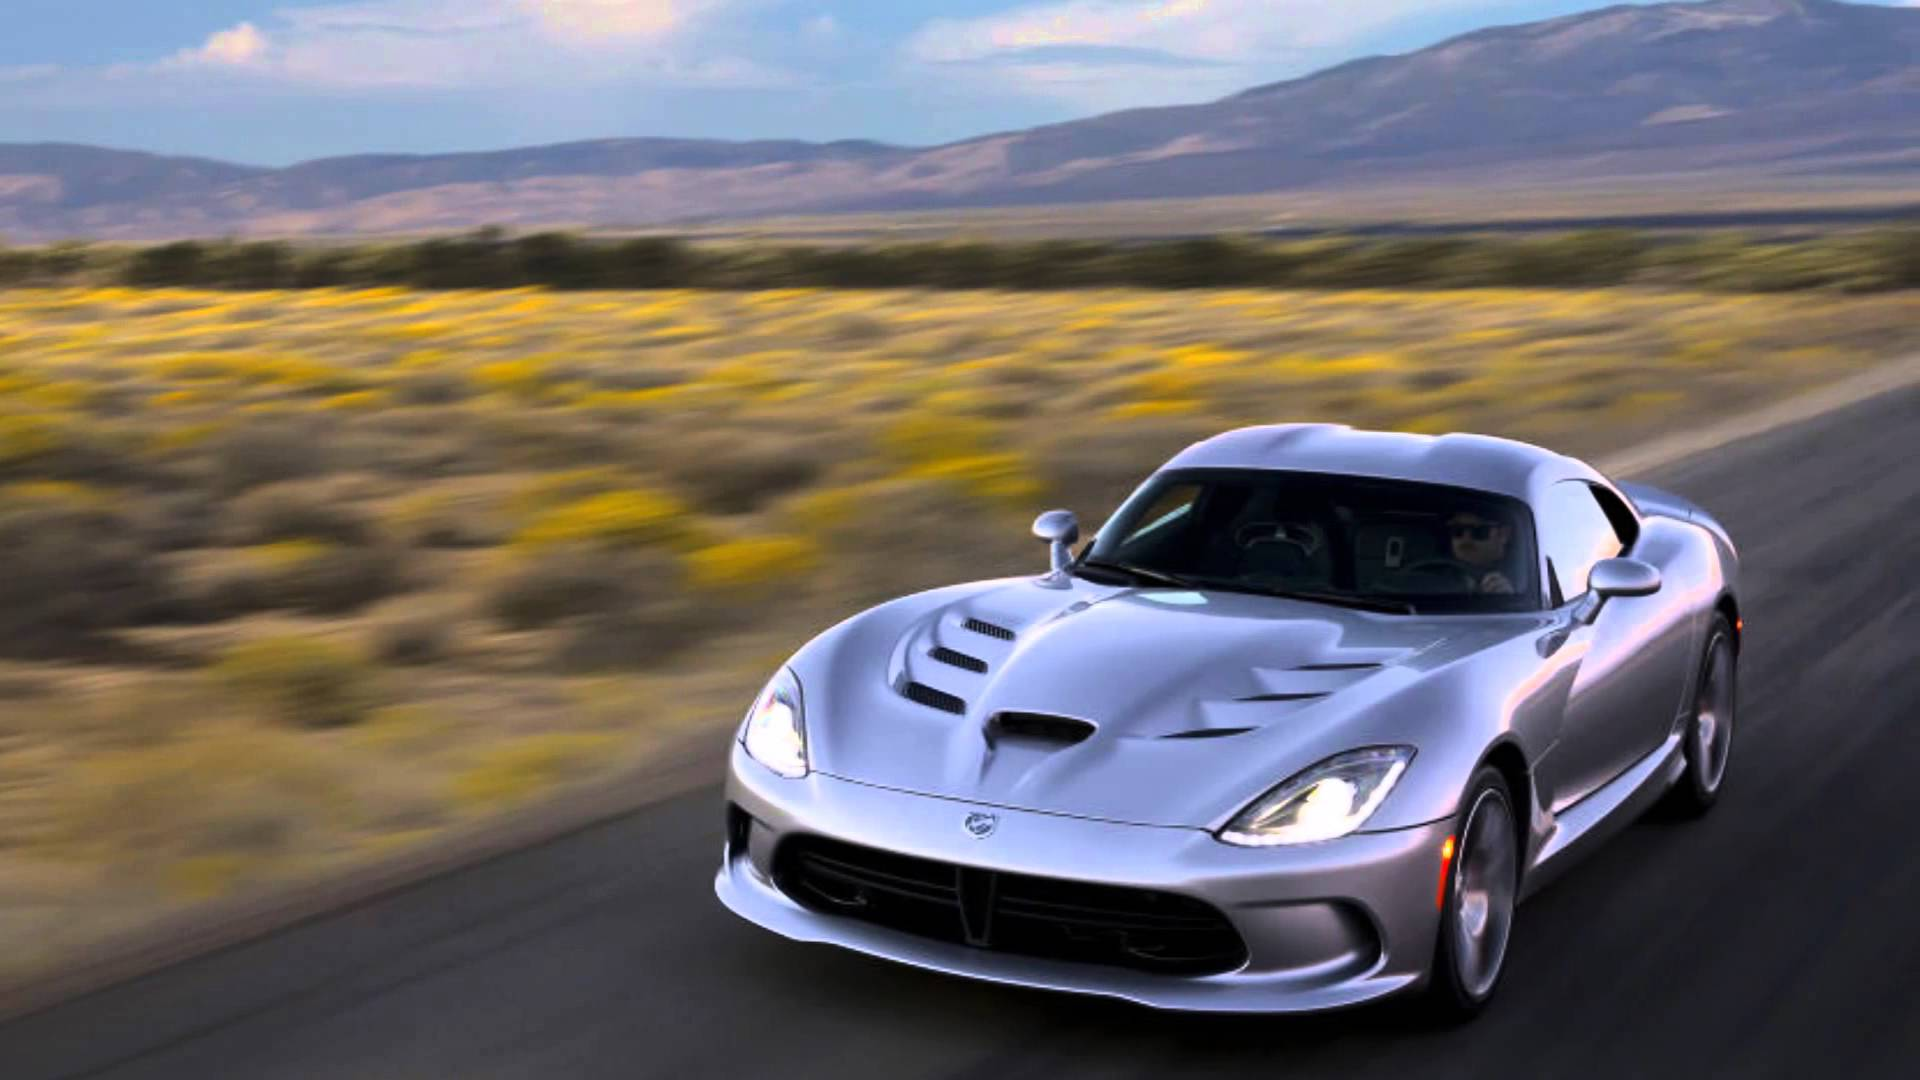 Dodge Viper Srt 10 Logo   wallpaper 1920x1080